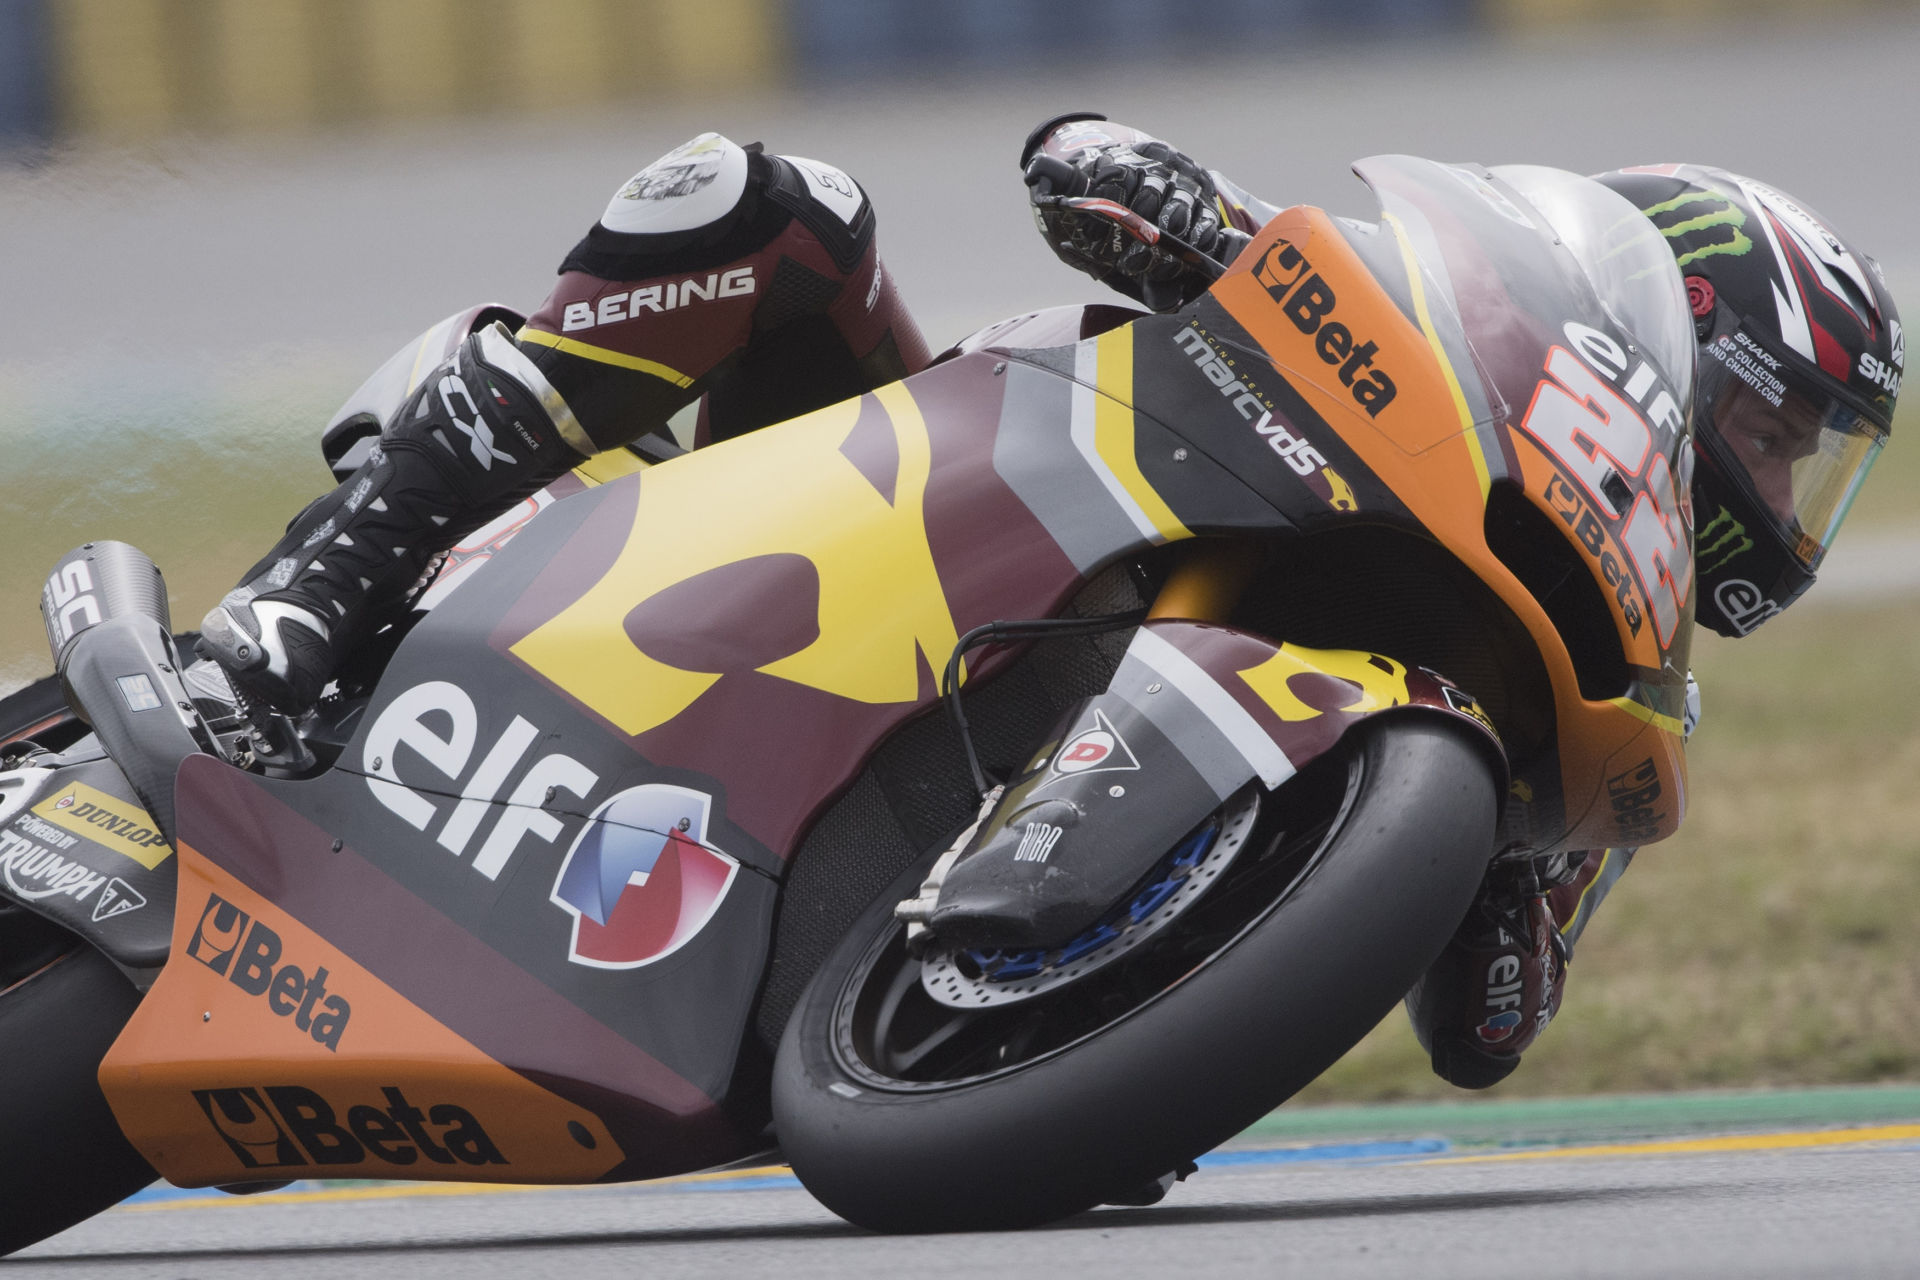 Sam Lowes (22), as seen at Le Mans. Photo courtesy Marc VDS Racing Team.